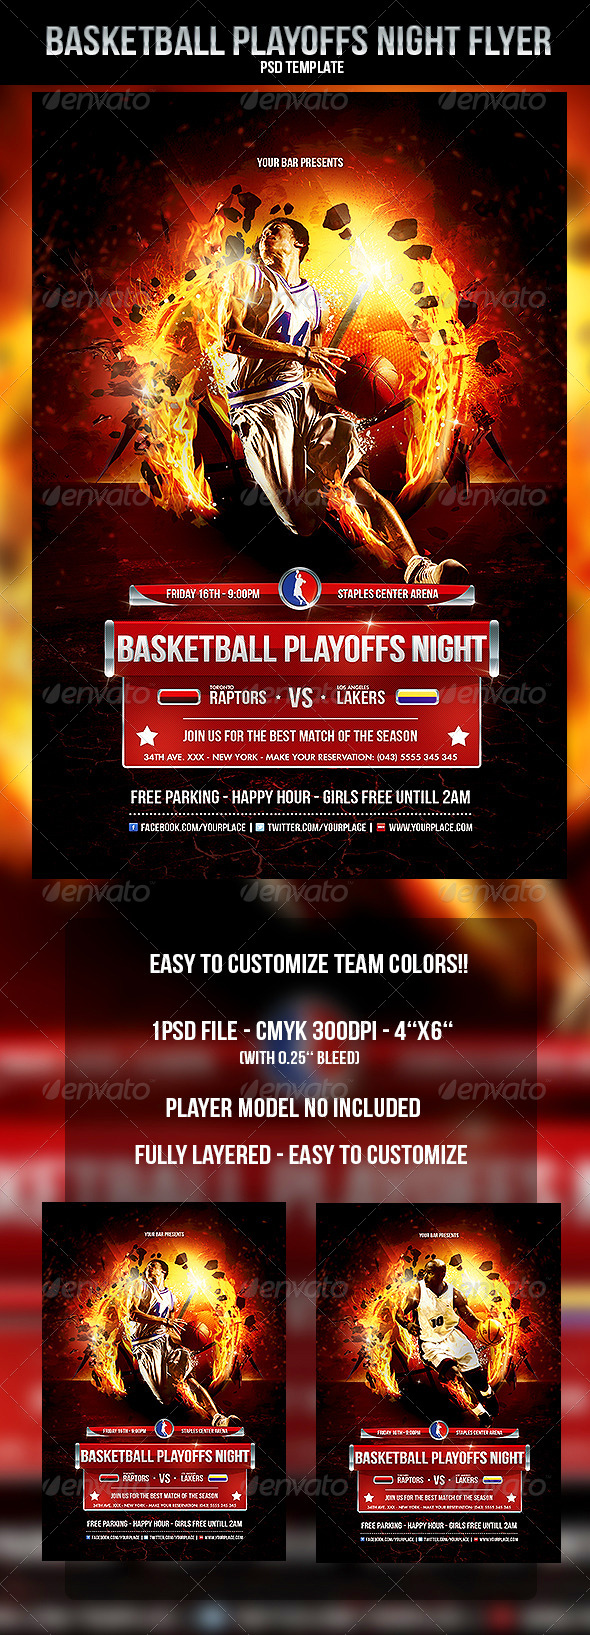 Basketball Playoffs Night Flyer Template by OdinDesign – Bar Flyer Template